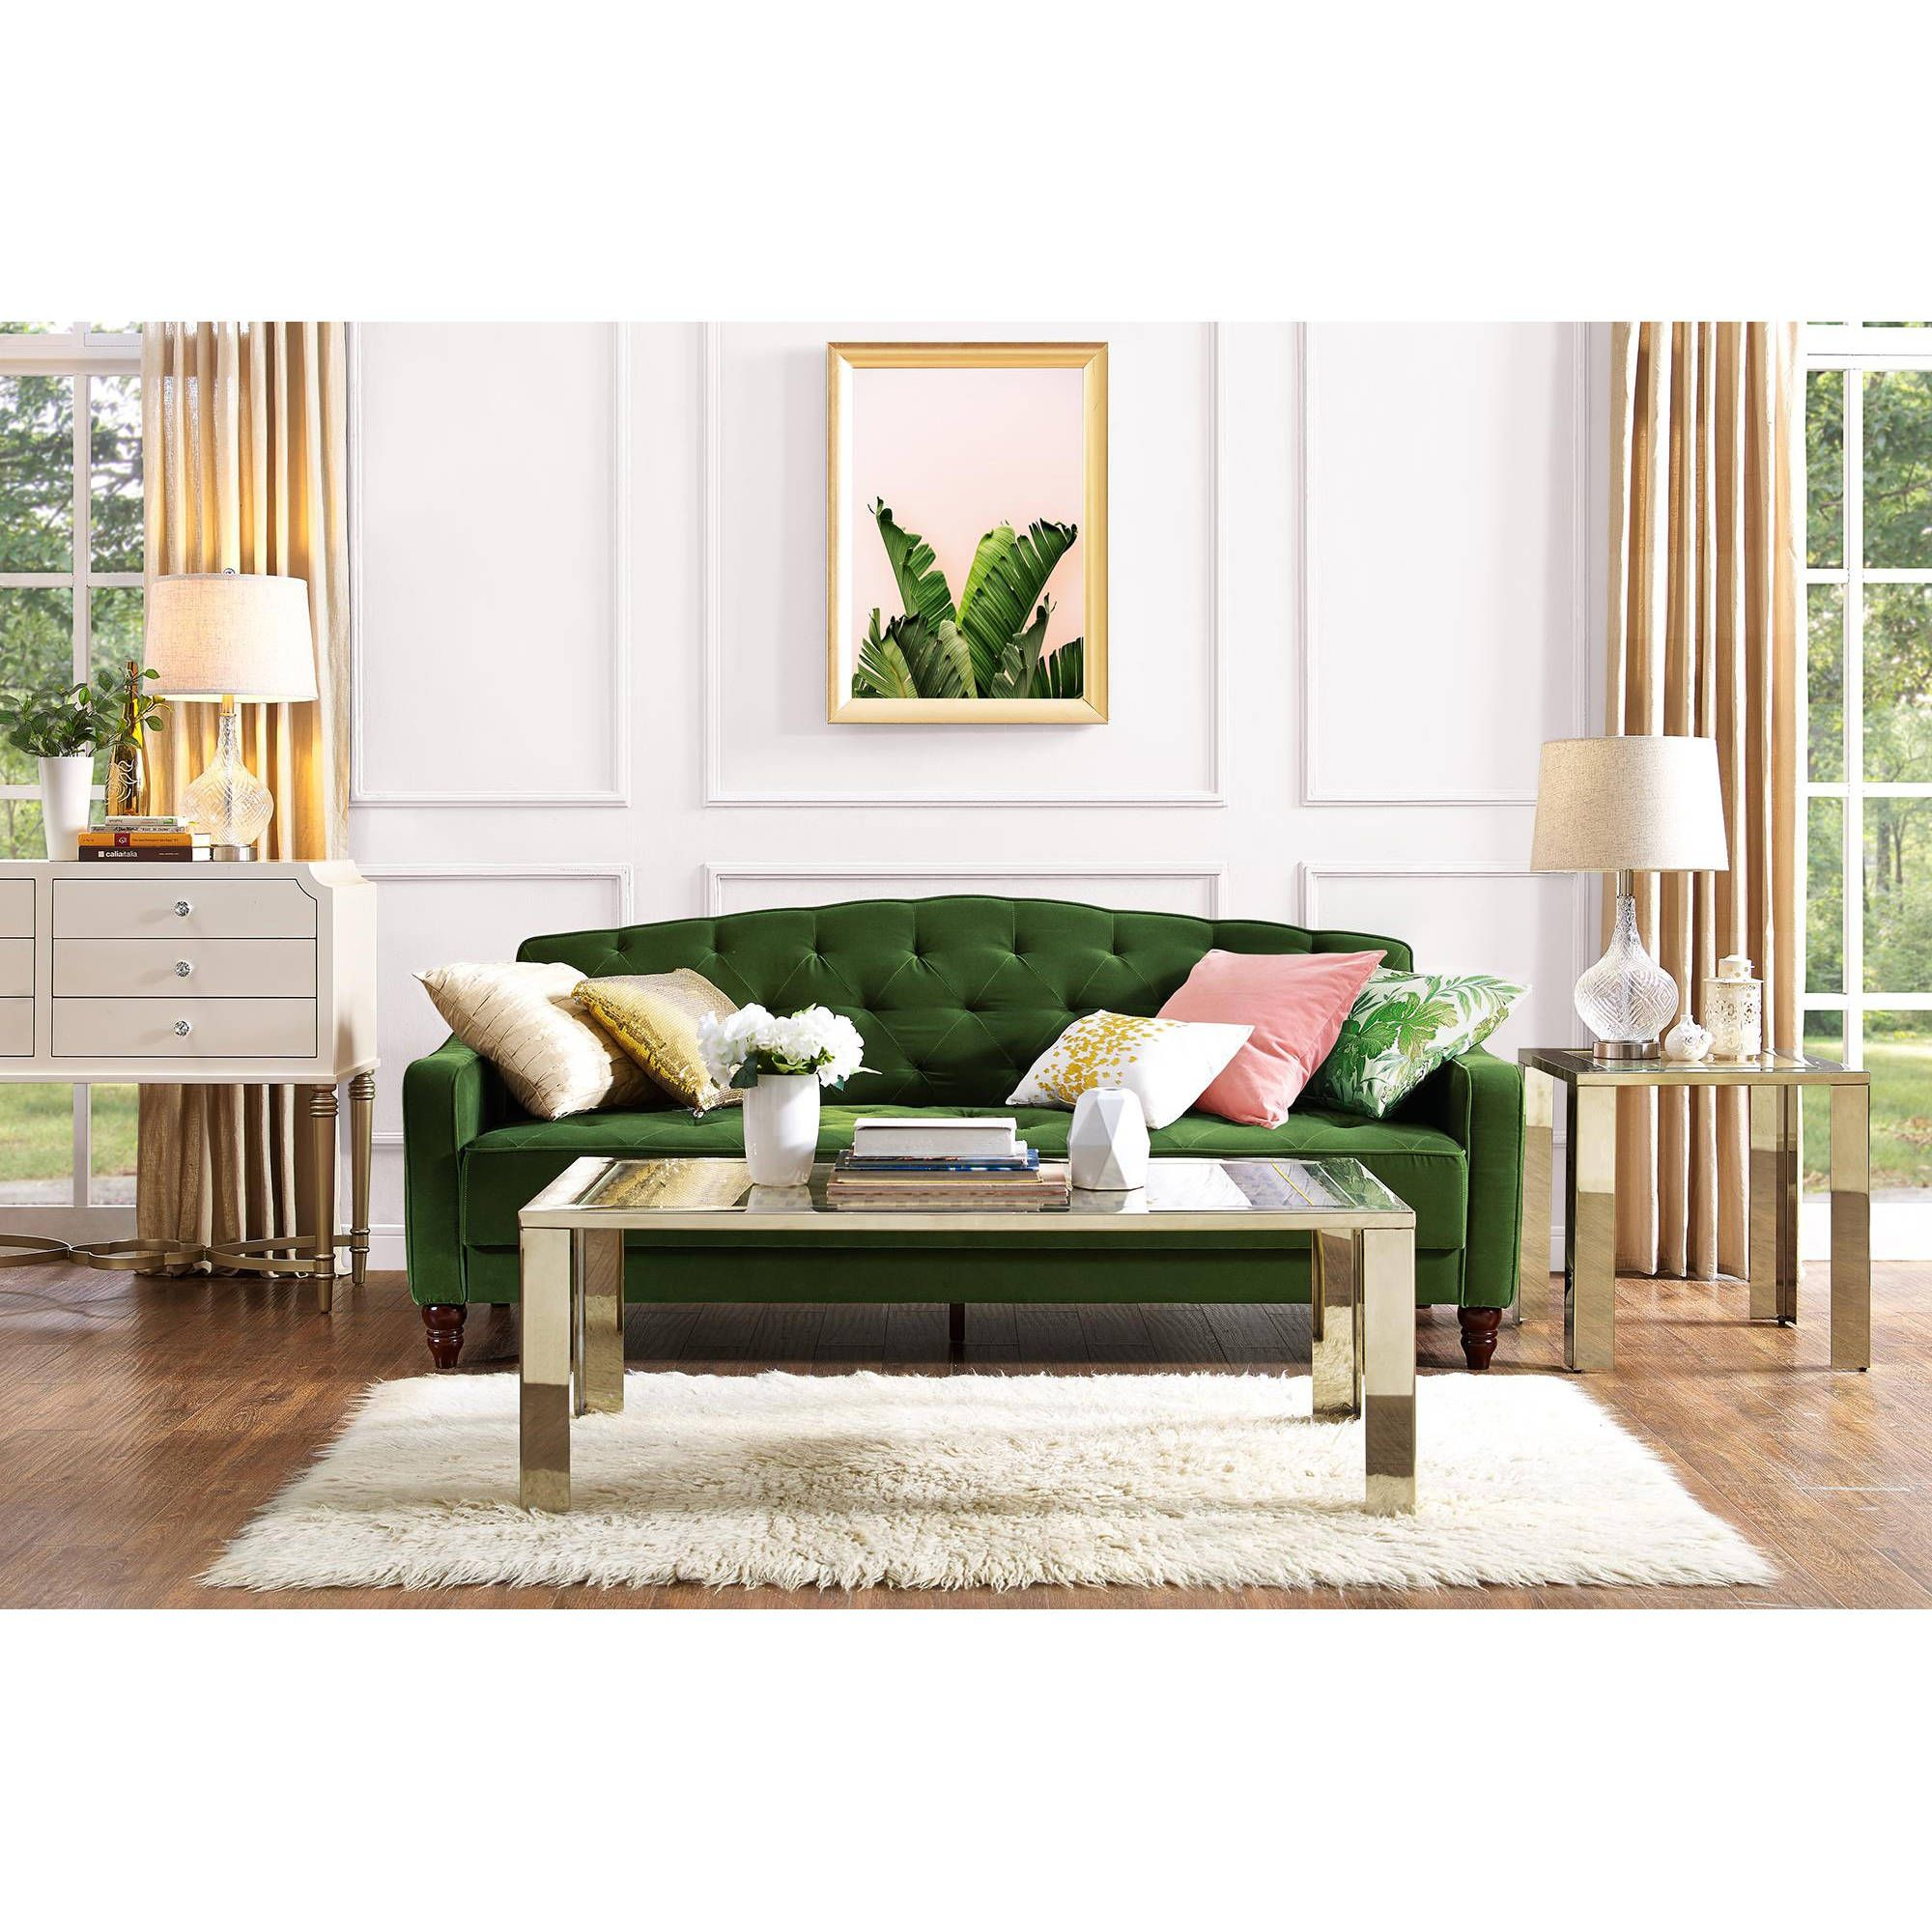 Home Green Sofa Tufted Sofa Couch Furniture